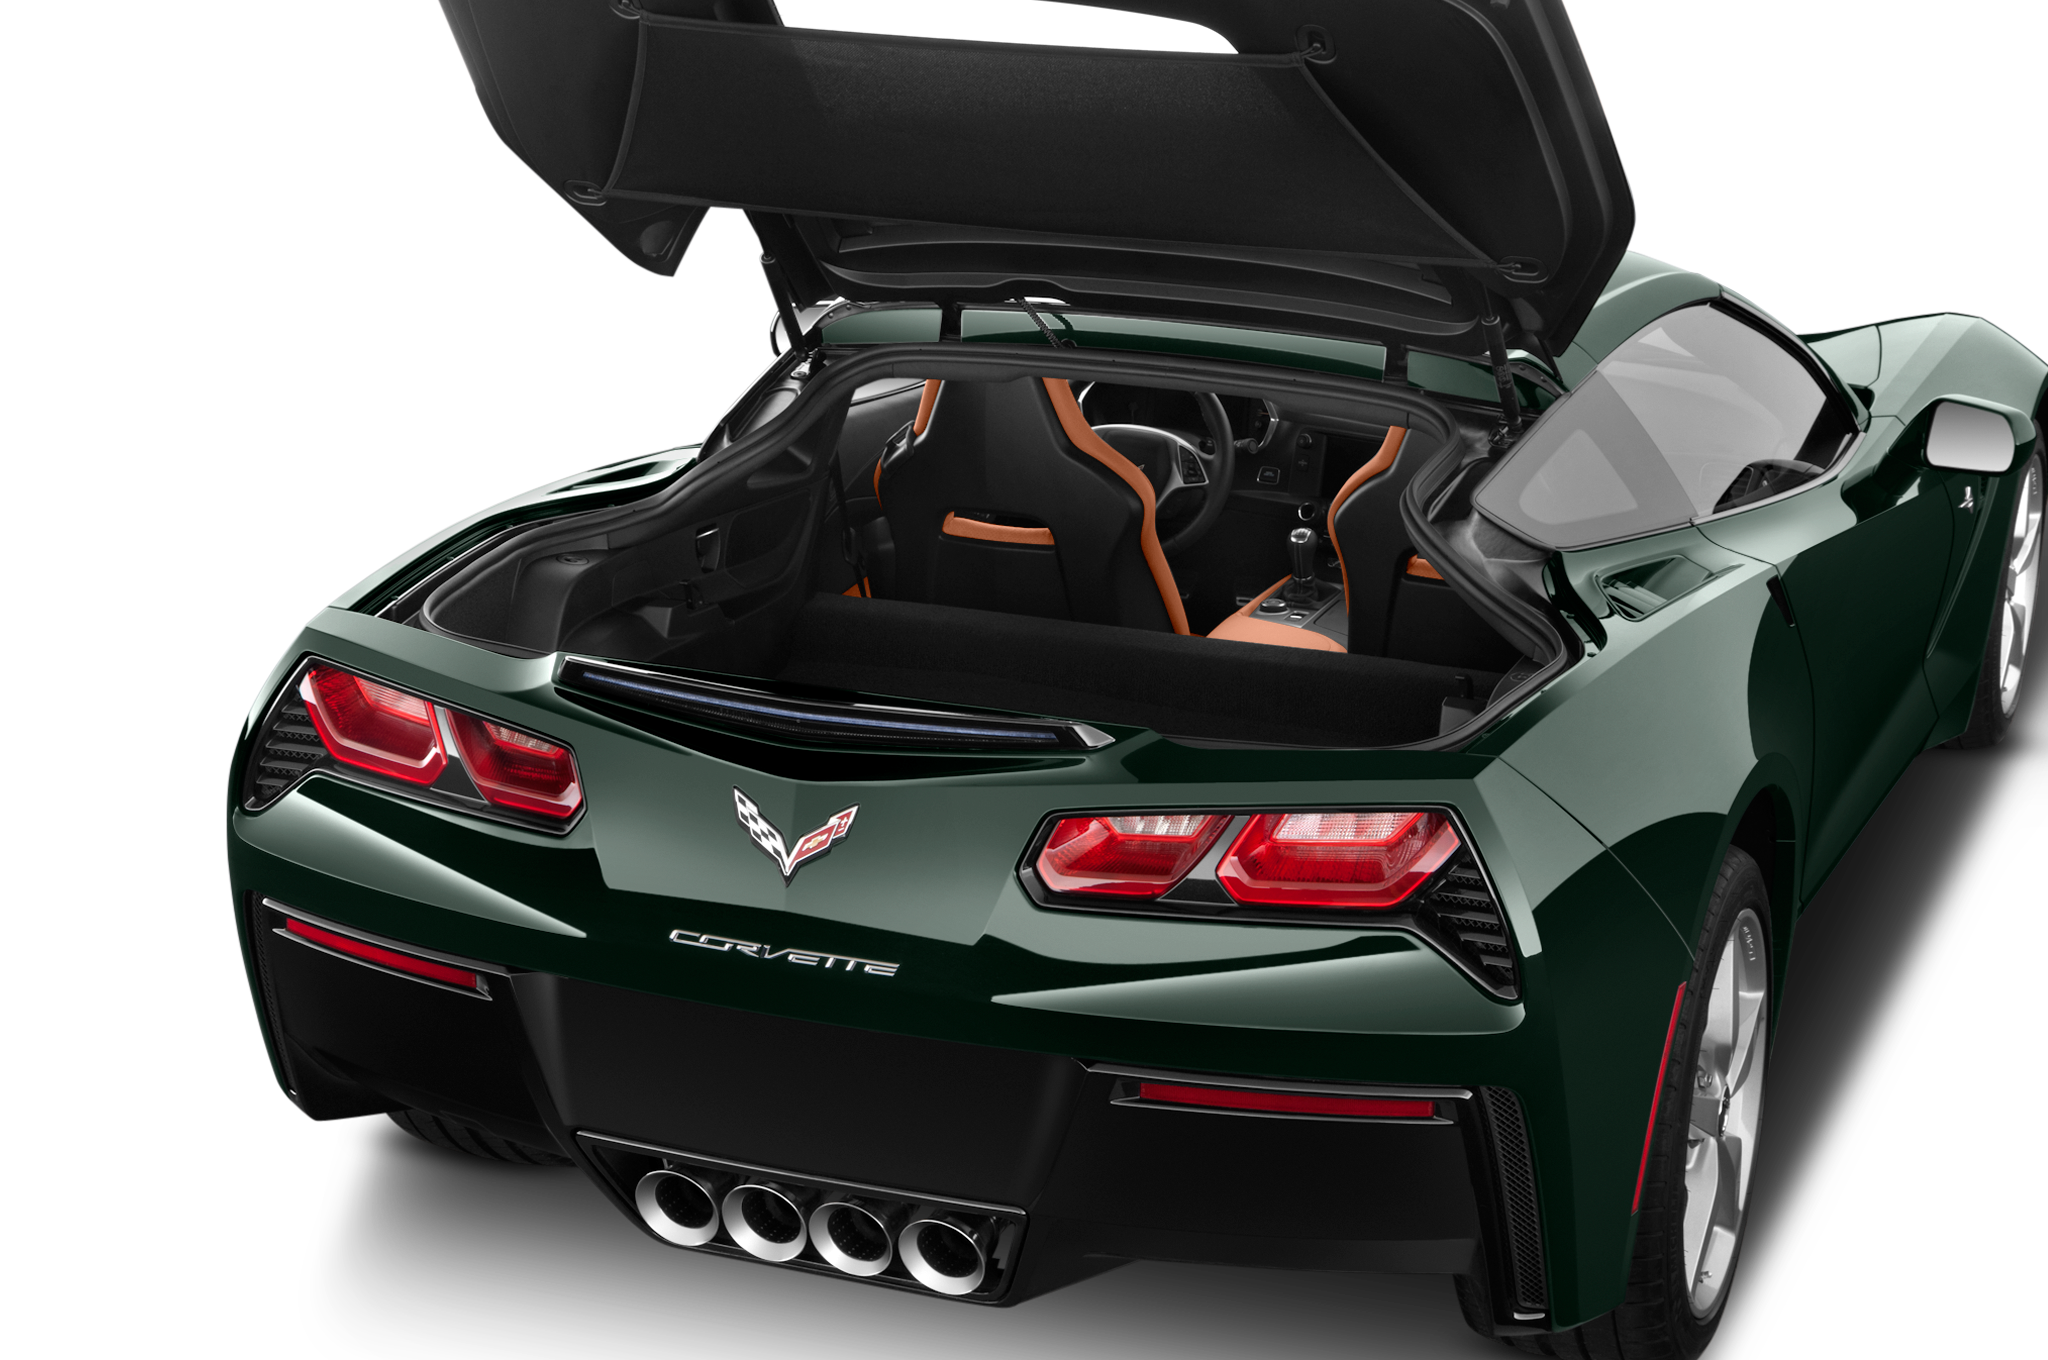 Car open trunk clipart jpg royalty free Chevrolet Corvette PNG Image - PurePNG | Free transparent CC0 PNG ... jpg royalty free